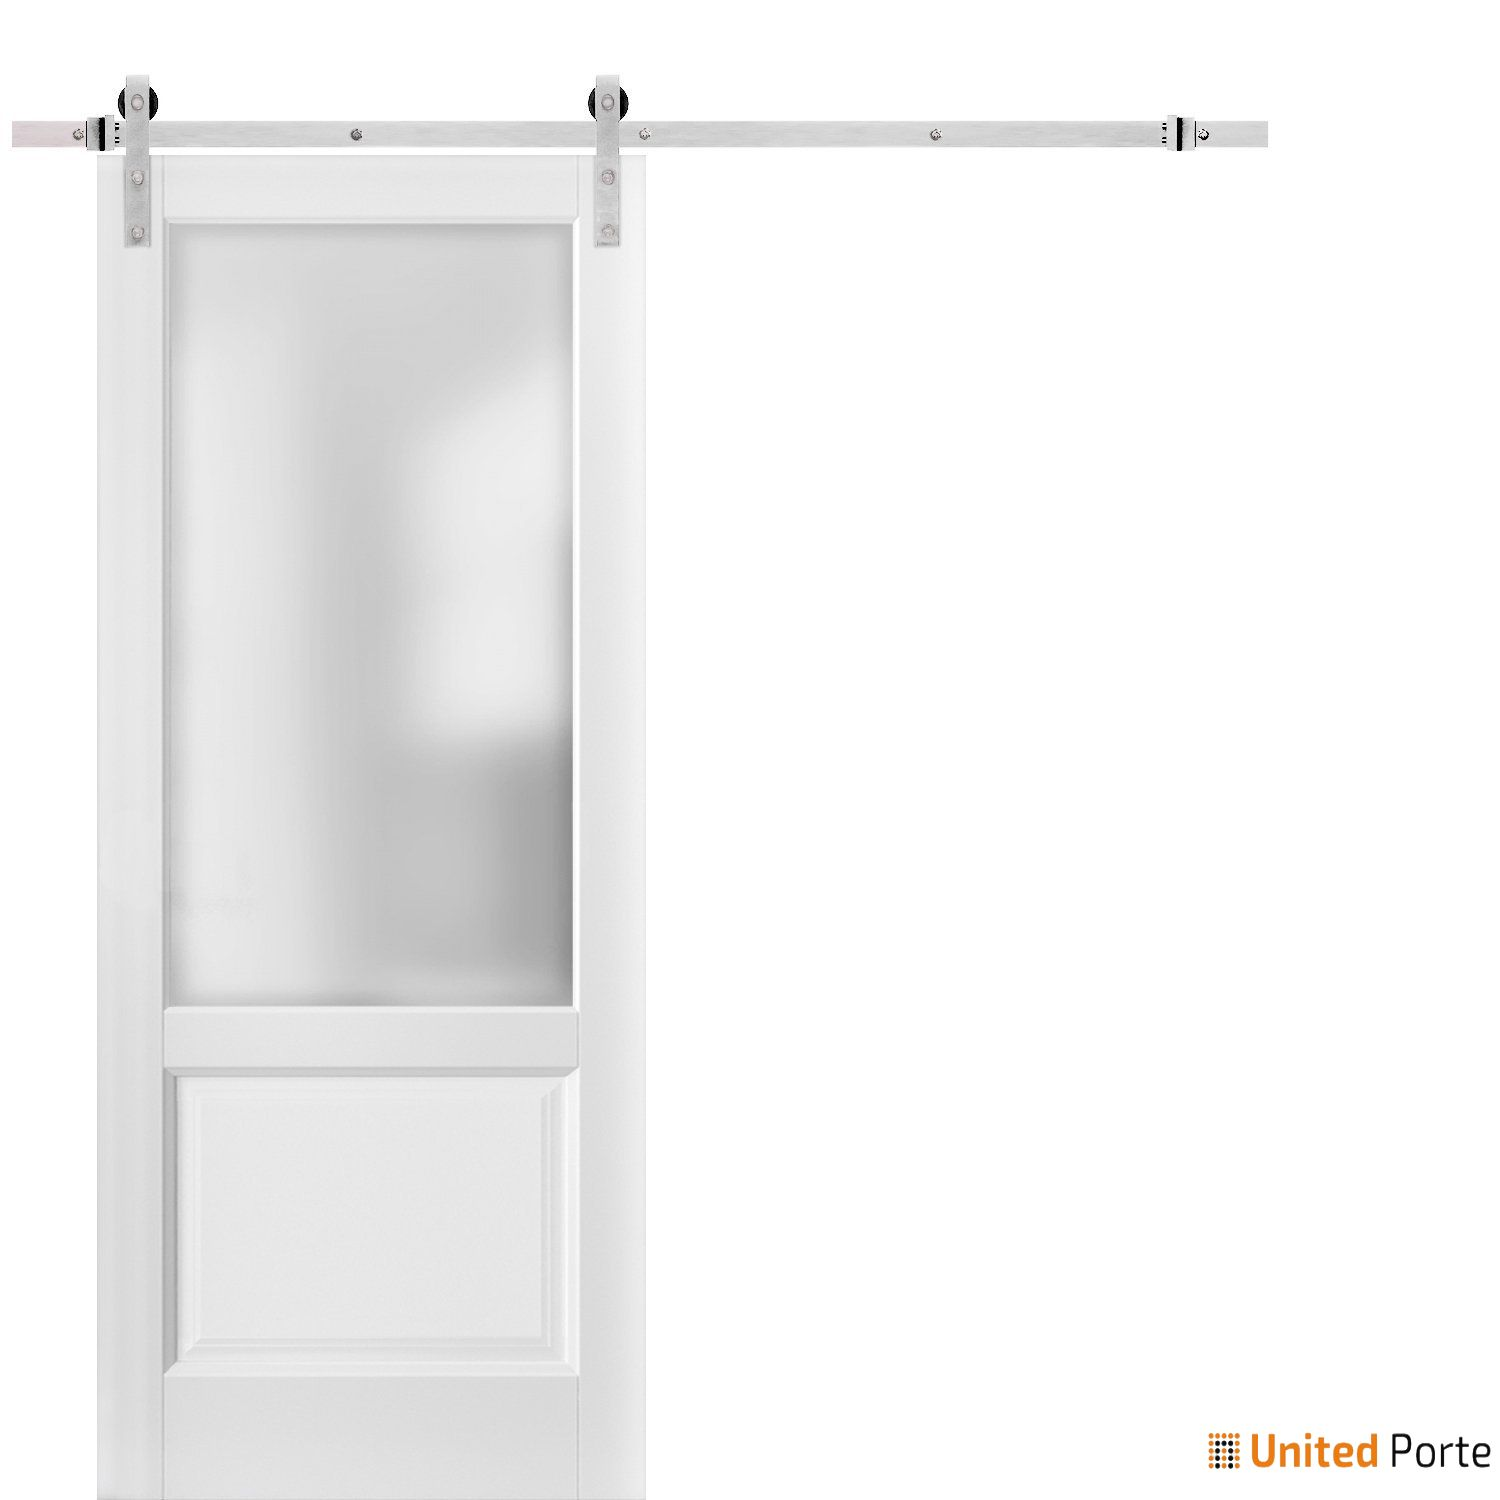 Lucia 22 White Silk with Frosted Opaque Glass Sliding Barn Door with Stainless Hardware   Lite Wooden Solid Panel Interior Barn Doors